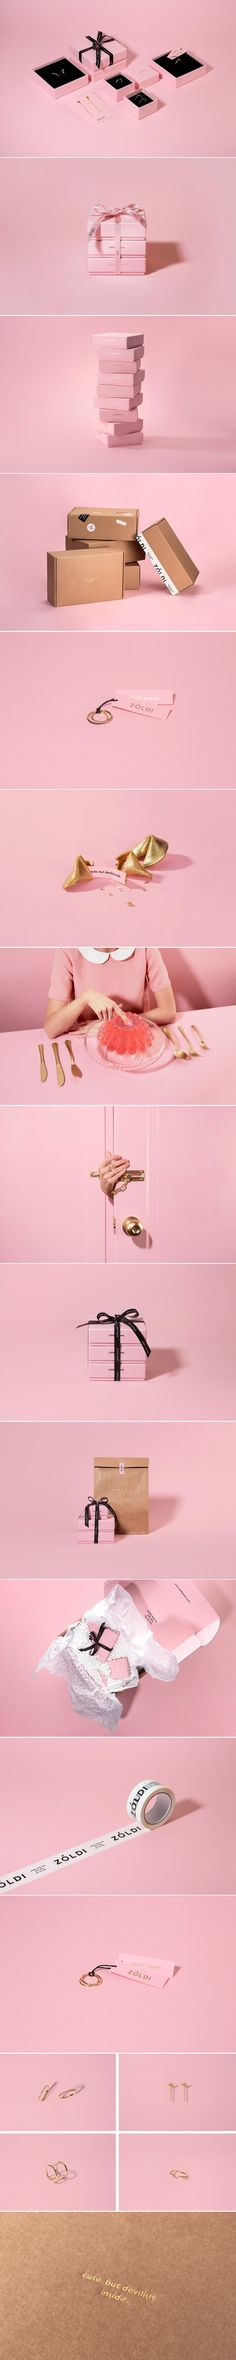 Meet ZÓLDI, The Jewelry Brand That Aims to Empower Women With Cute Packaging To Boot — The Dieline | Packaging & Branding Design & Innovation News